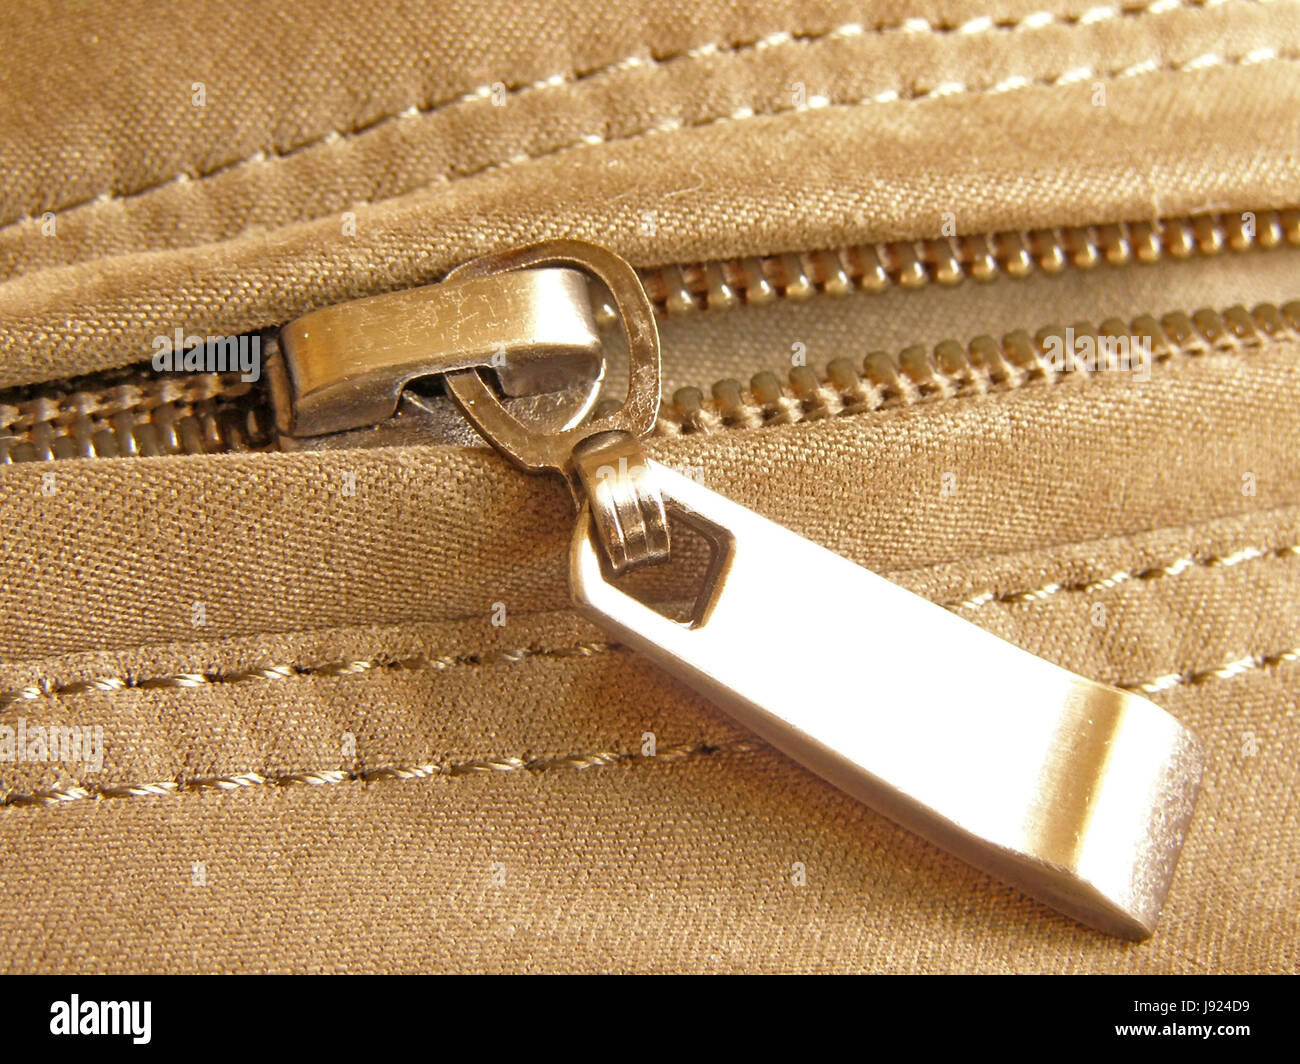 zippers, fashion, steel, metal, open, material, drug, anaesthetic, addictive - Stock Image